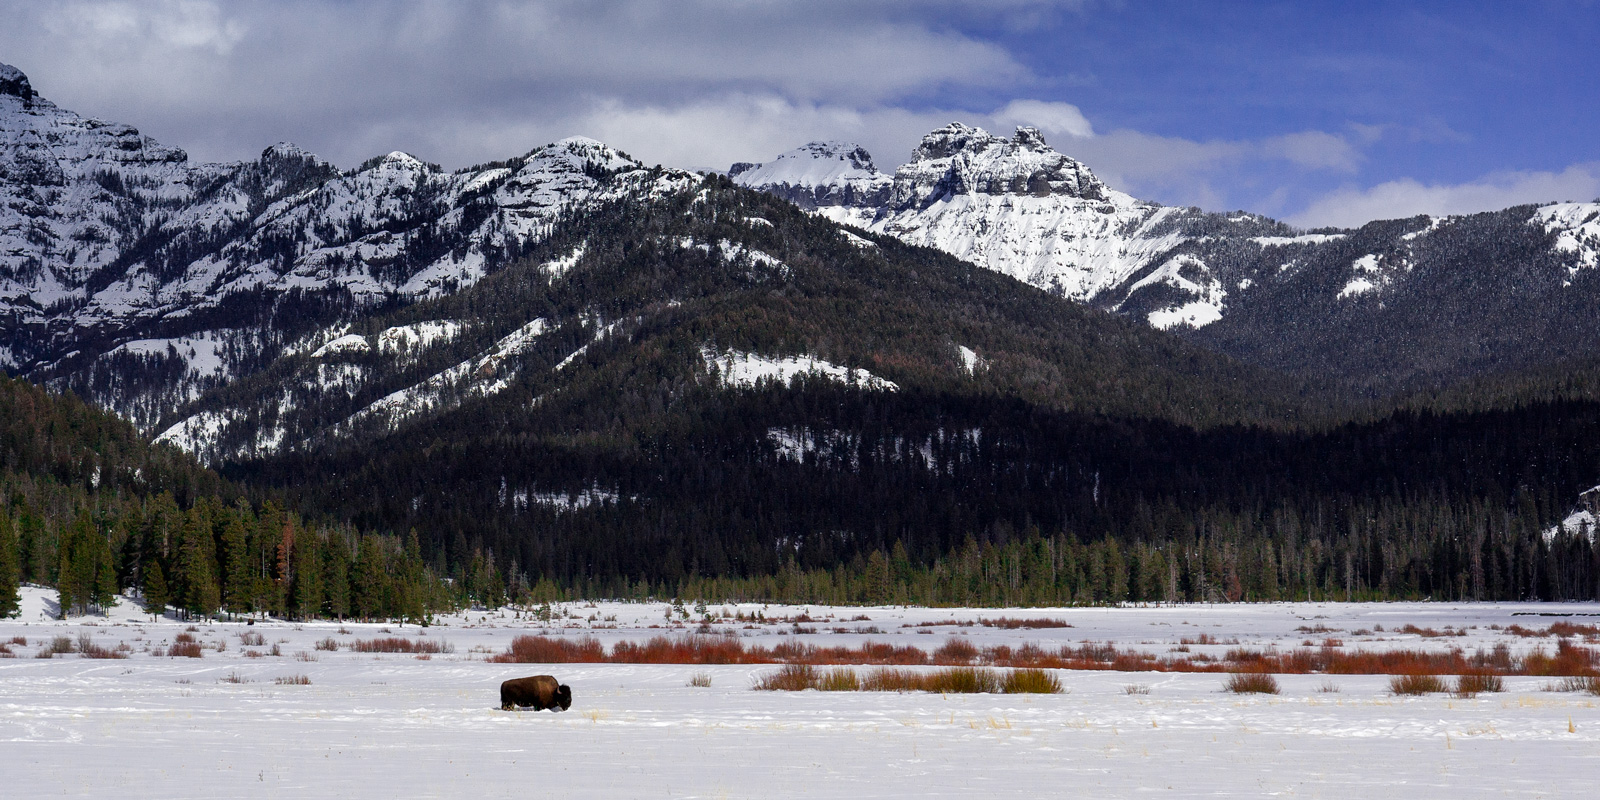 Wyoming, Yellowstone, Winter, Lamar Valley, Bison, Mountains, limited edition, photograph, fine art, landscape, photo